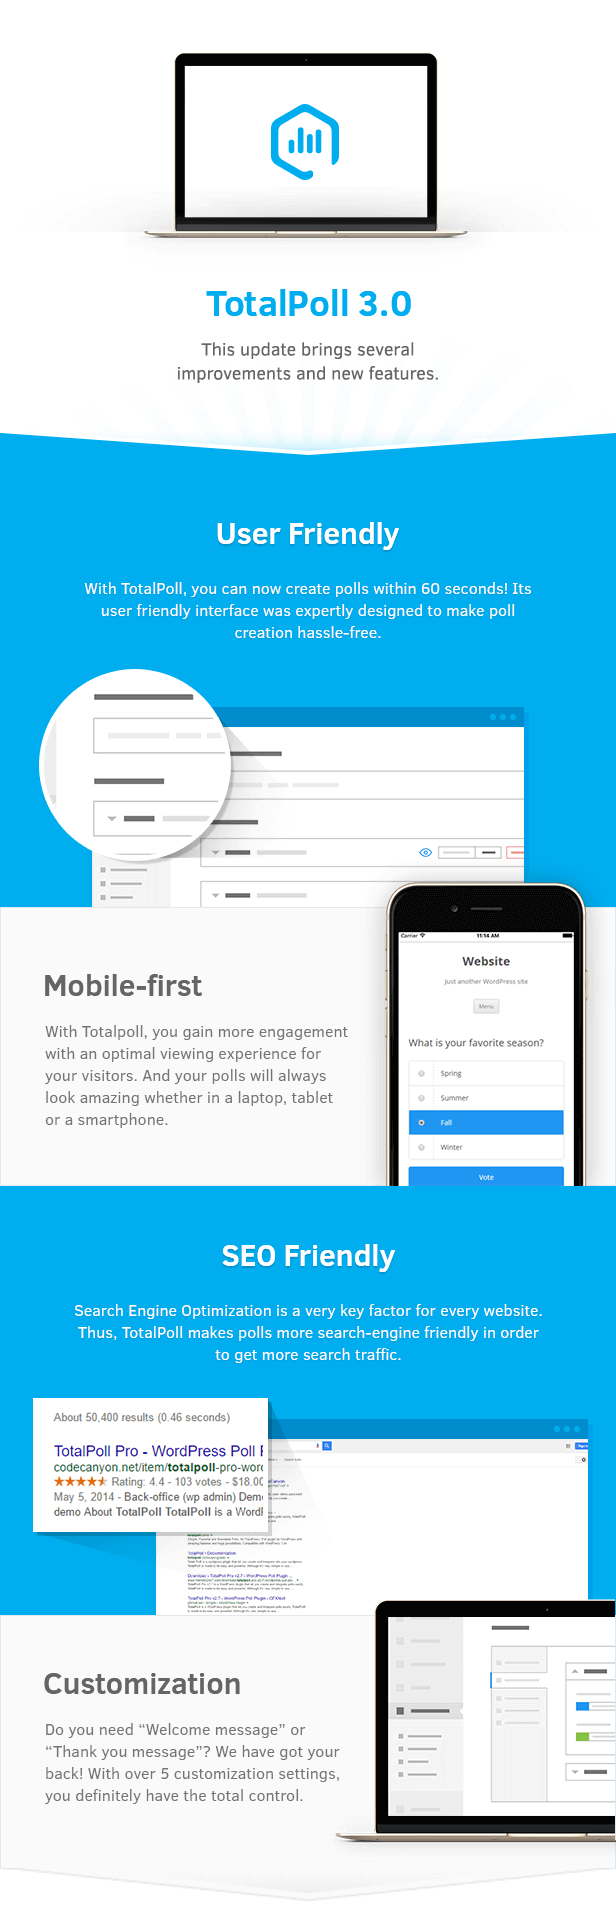 User Friendly, Mobile-first, SEO Friendly and Customization in TotalPoll WordPress poll plugin.